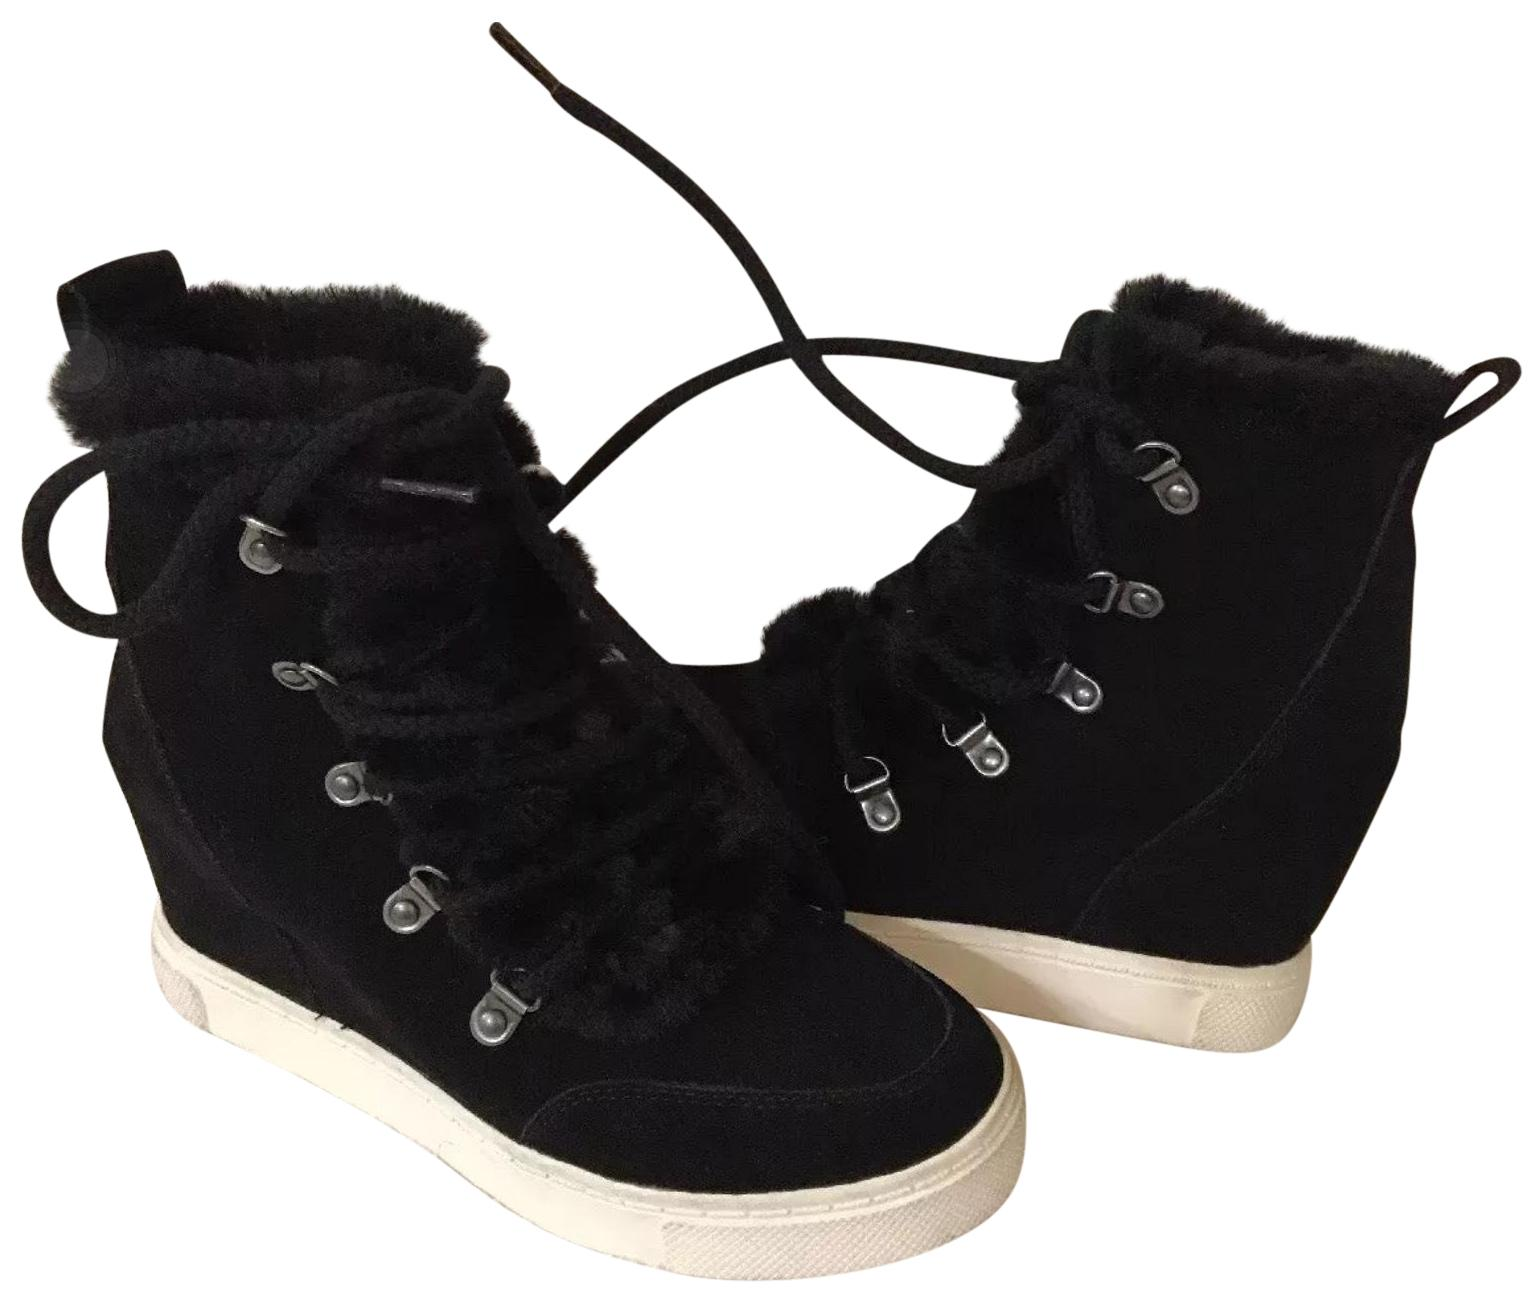 c59707ccbaa Steve Steve Steve Madden Black Lift Sneaker Wedges Size US 7 Regular ...